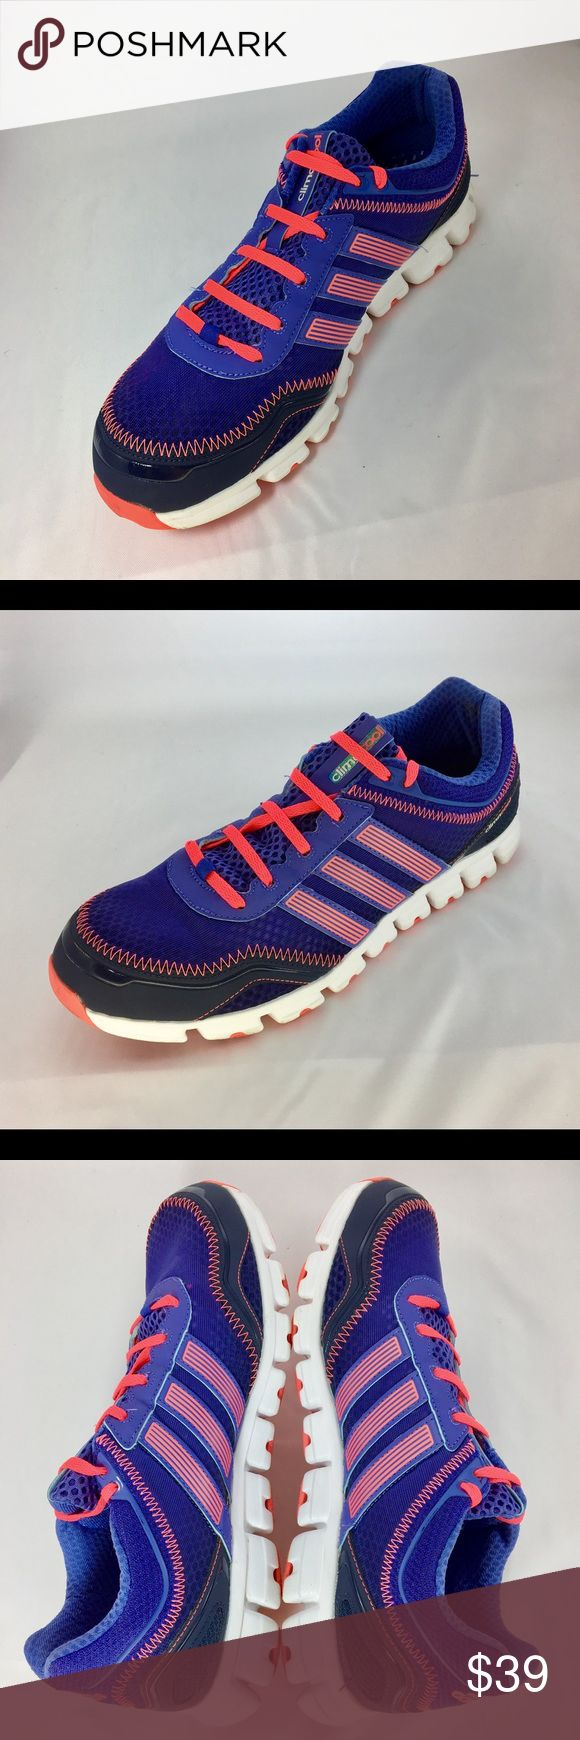 ADIDAS CLIMA COOL Women's Shoes SZ 10 M Purple/Pin Excellent condition see pictures for more details adidas Shoes Athletic Shoes